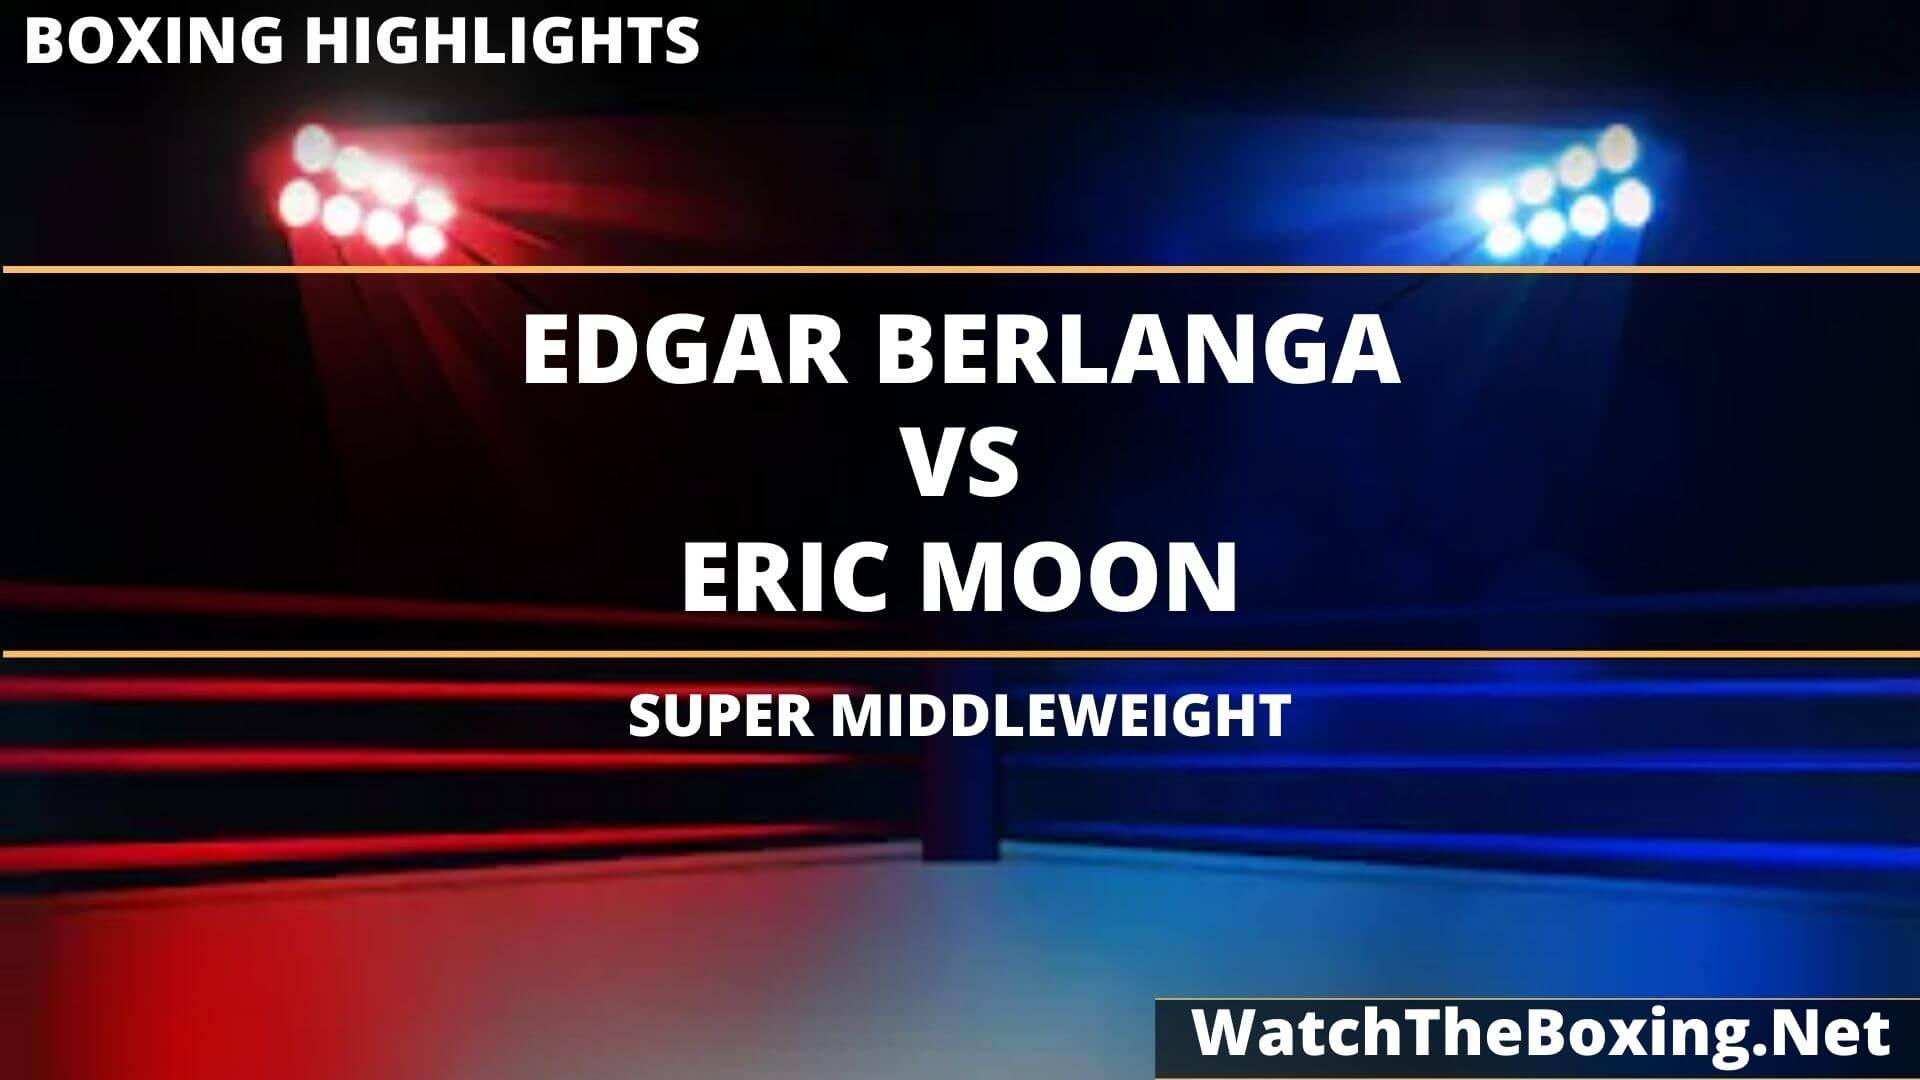 Edgar Berlanga Vs Eric Moon Highlights 2020 Super Middleweight